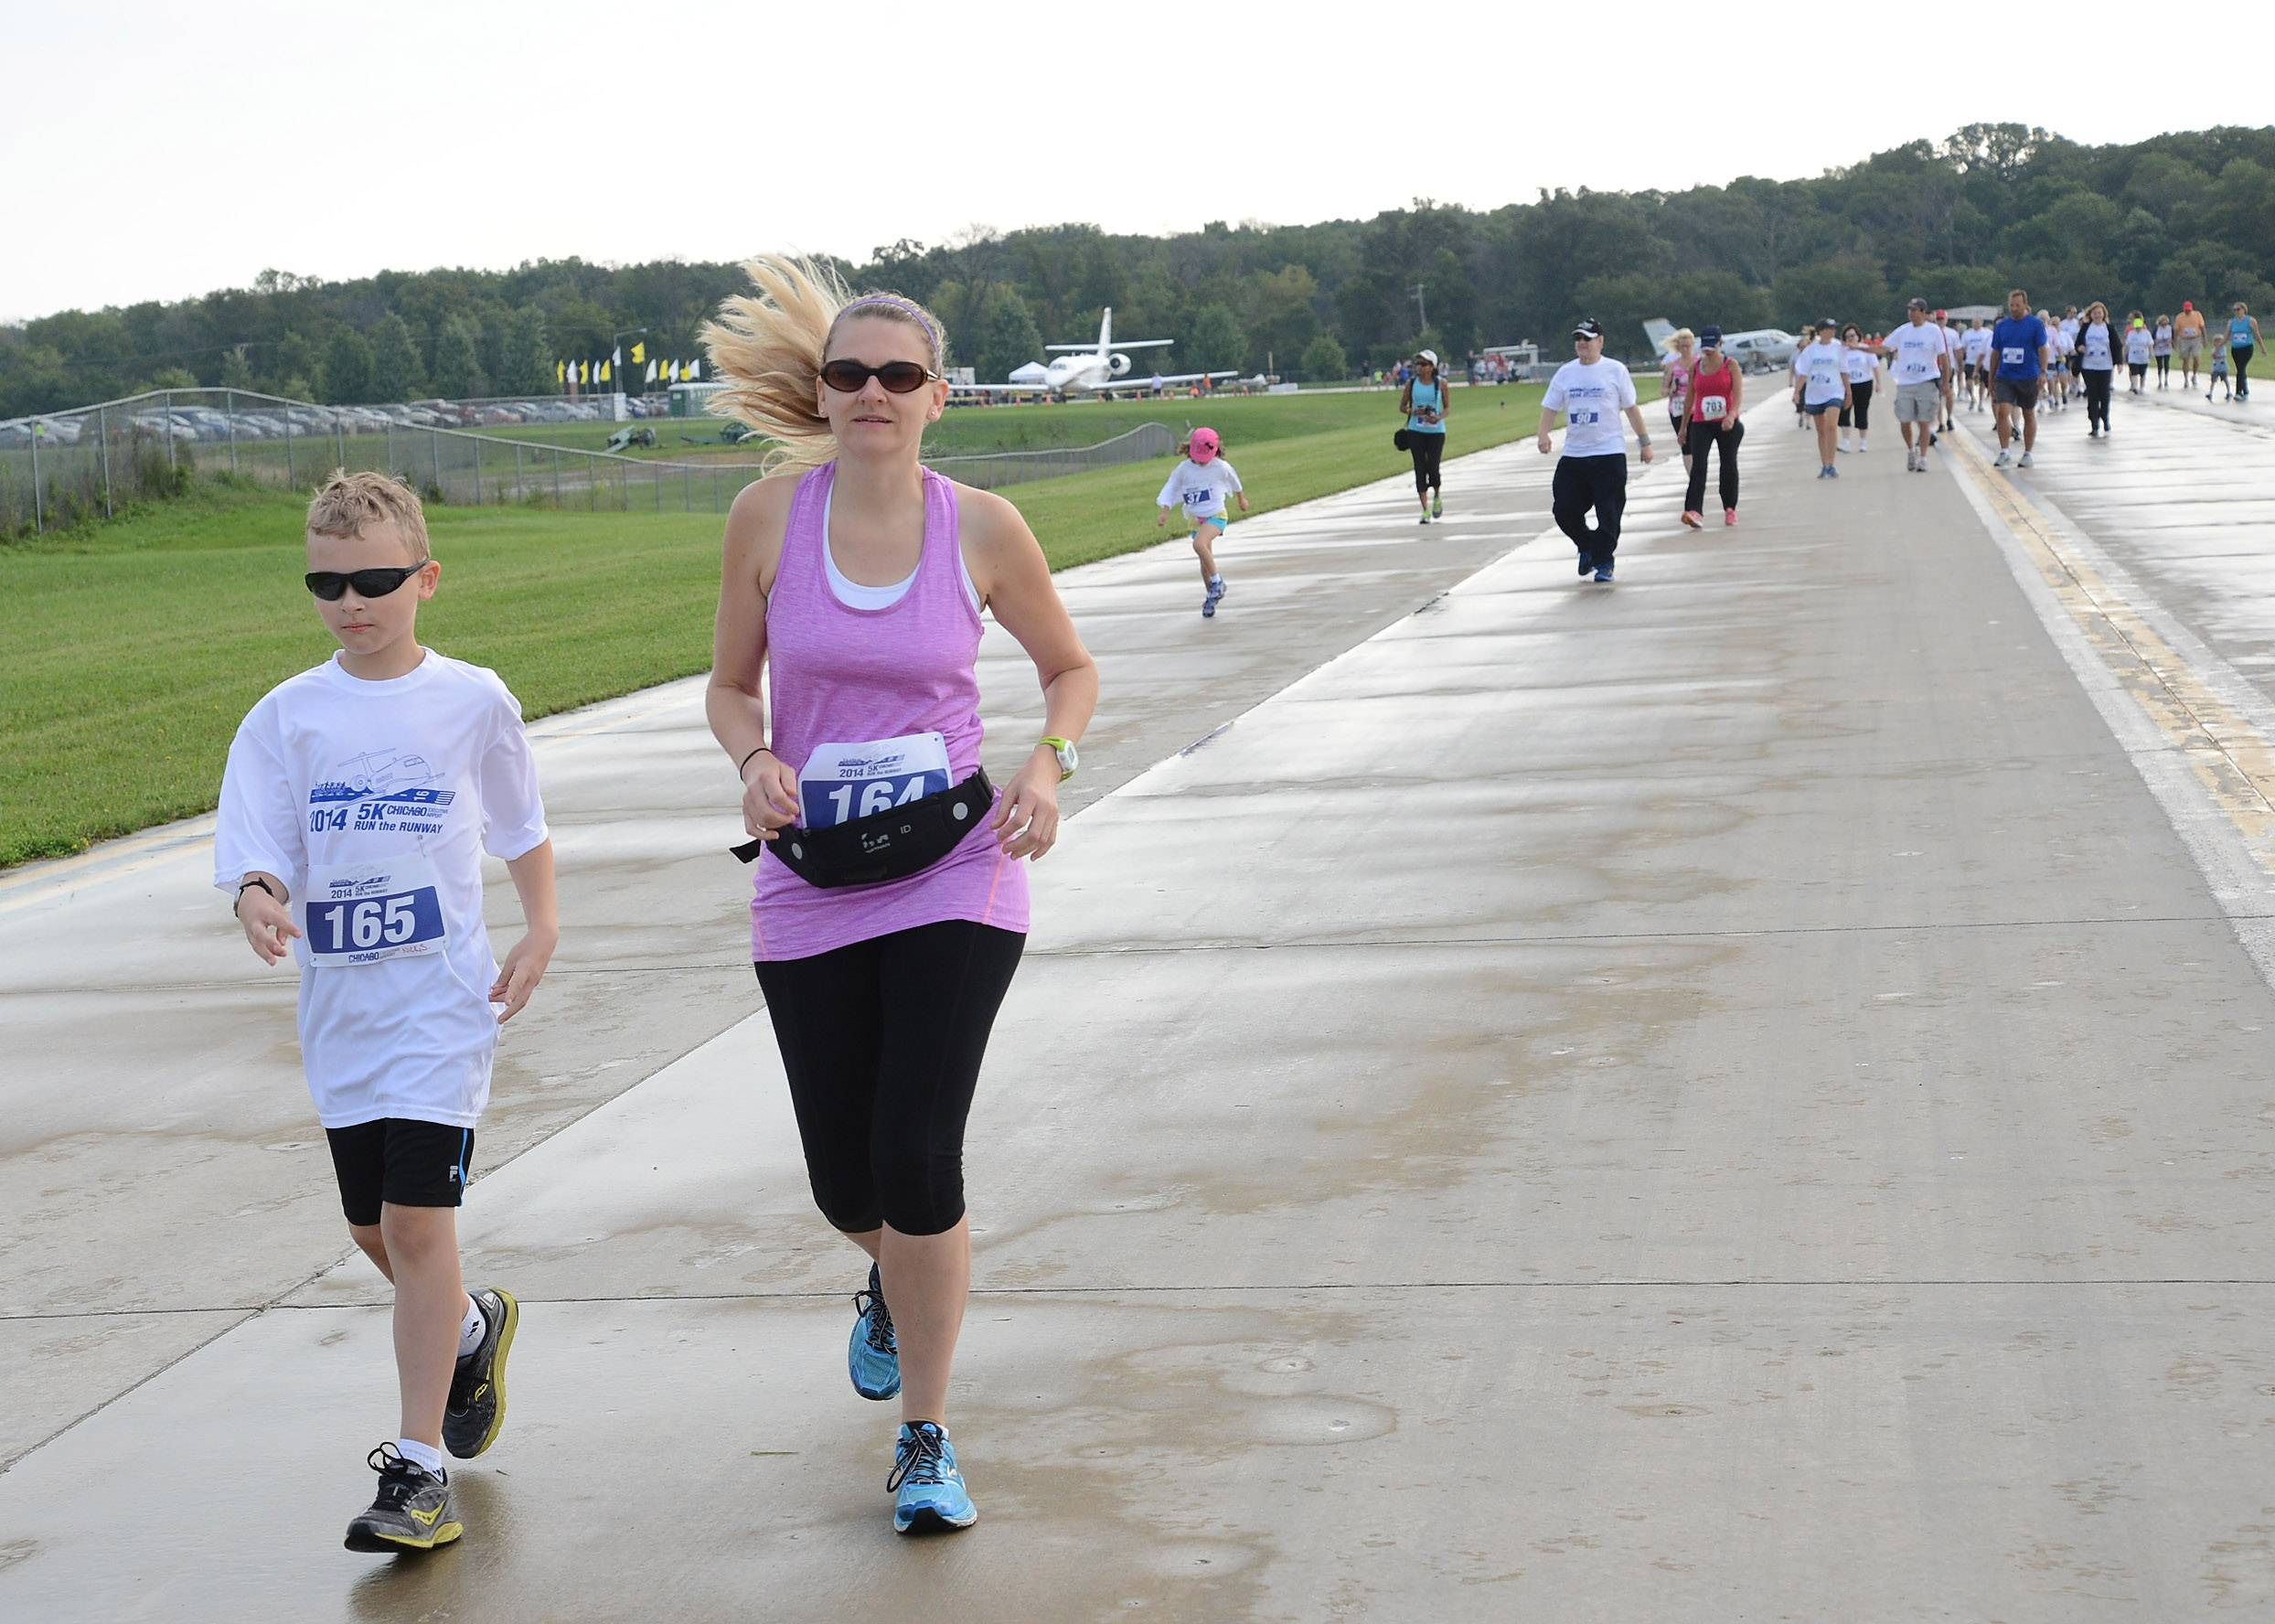 Sara and Nick Schroeder of Lake Zurich make their way down the runway during the Run the Runway 5K Run and 1 Mile Walk at Chicago Executive Airport in Wheeling.